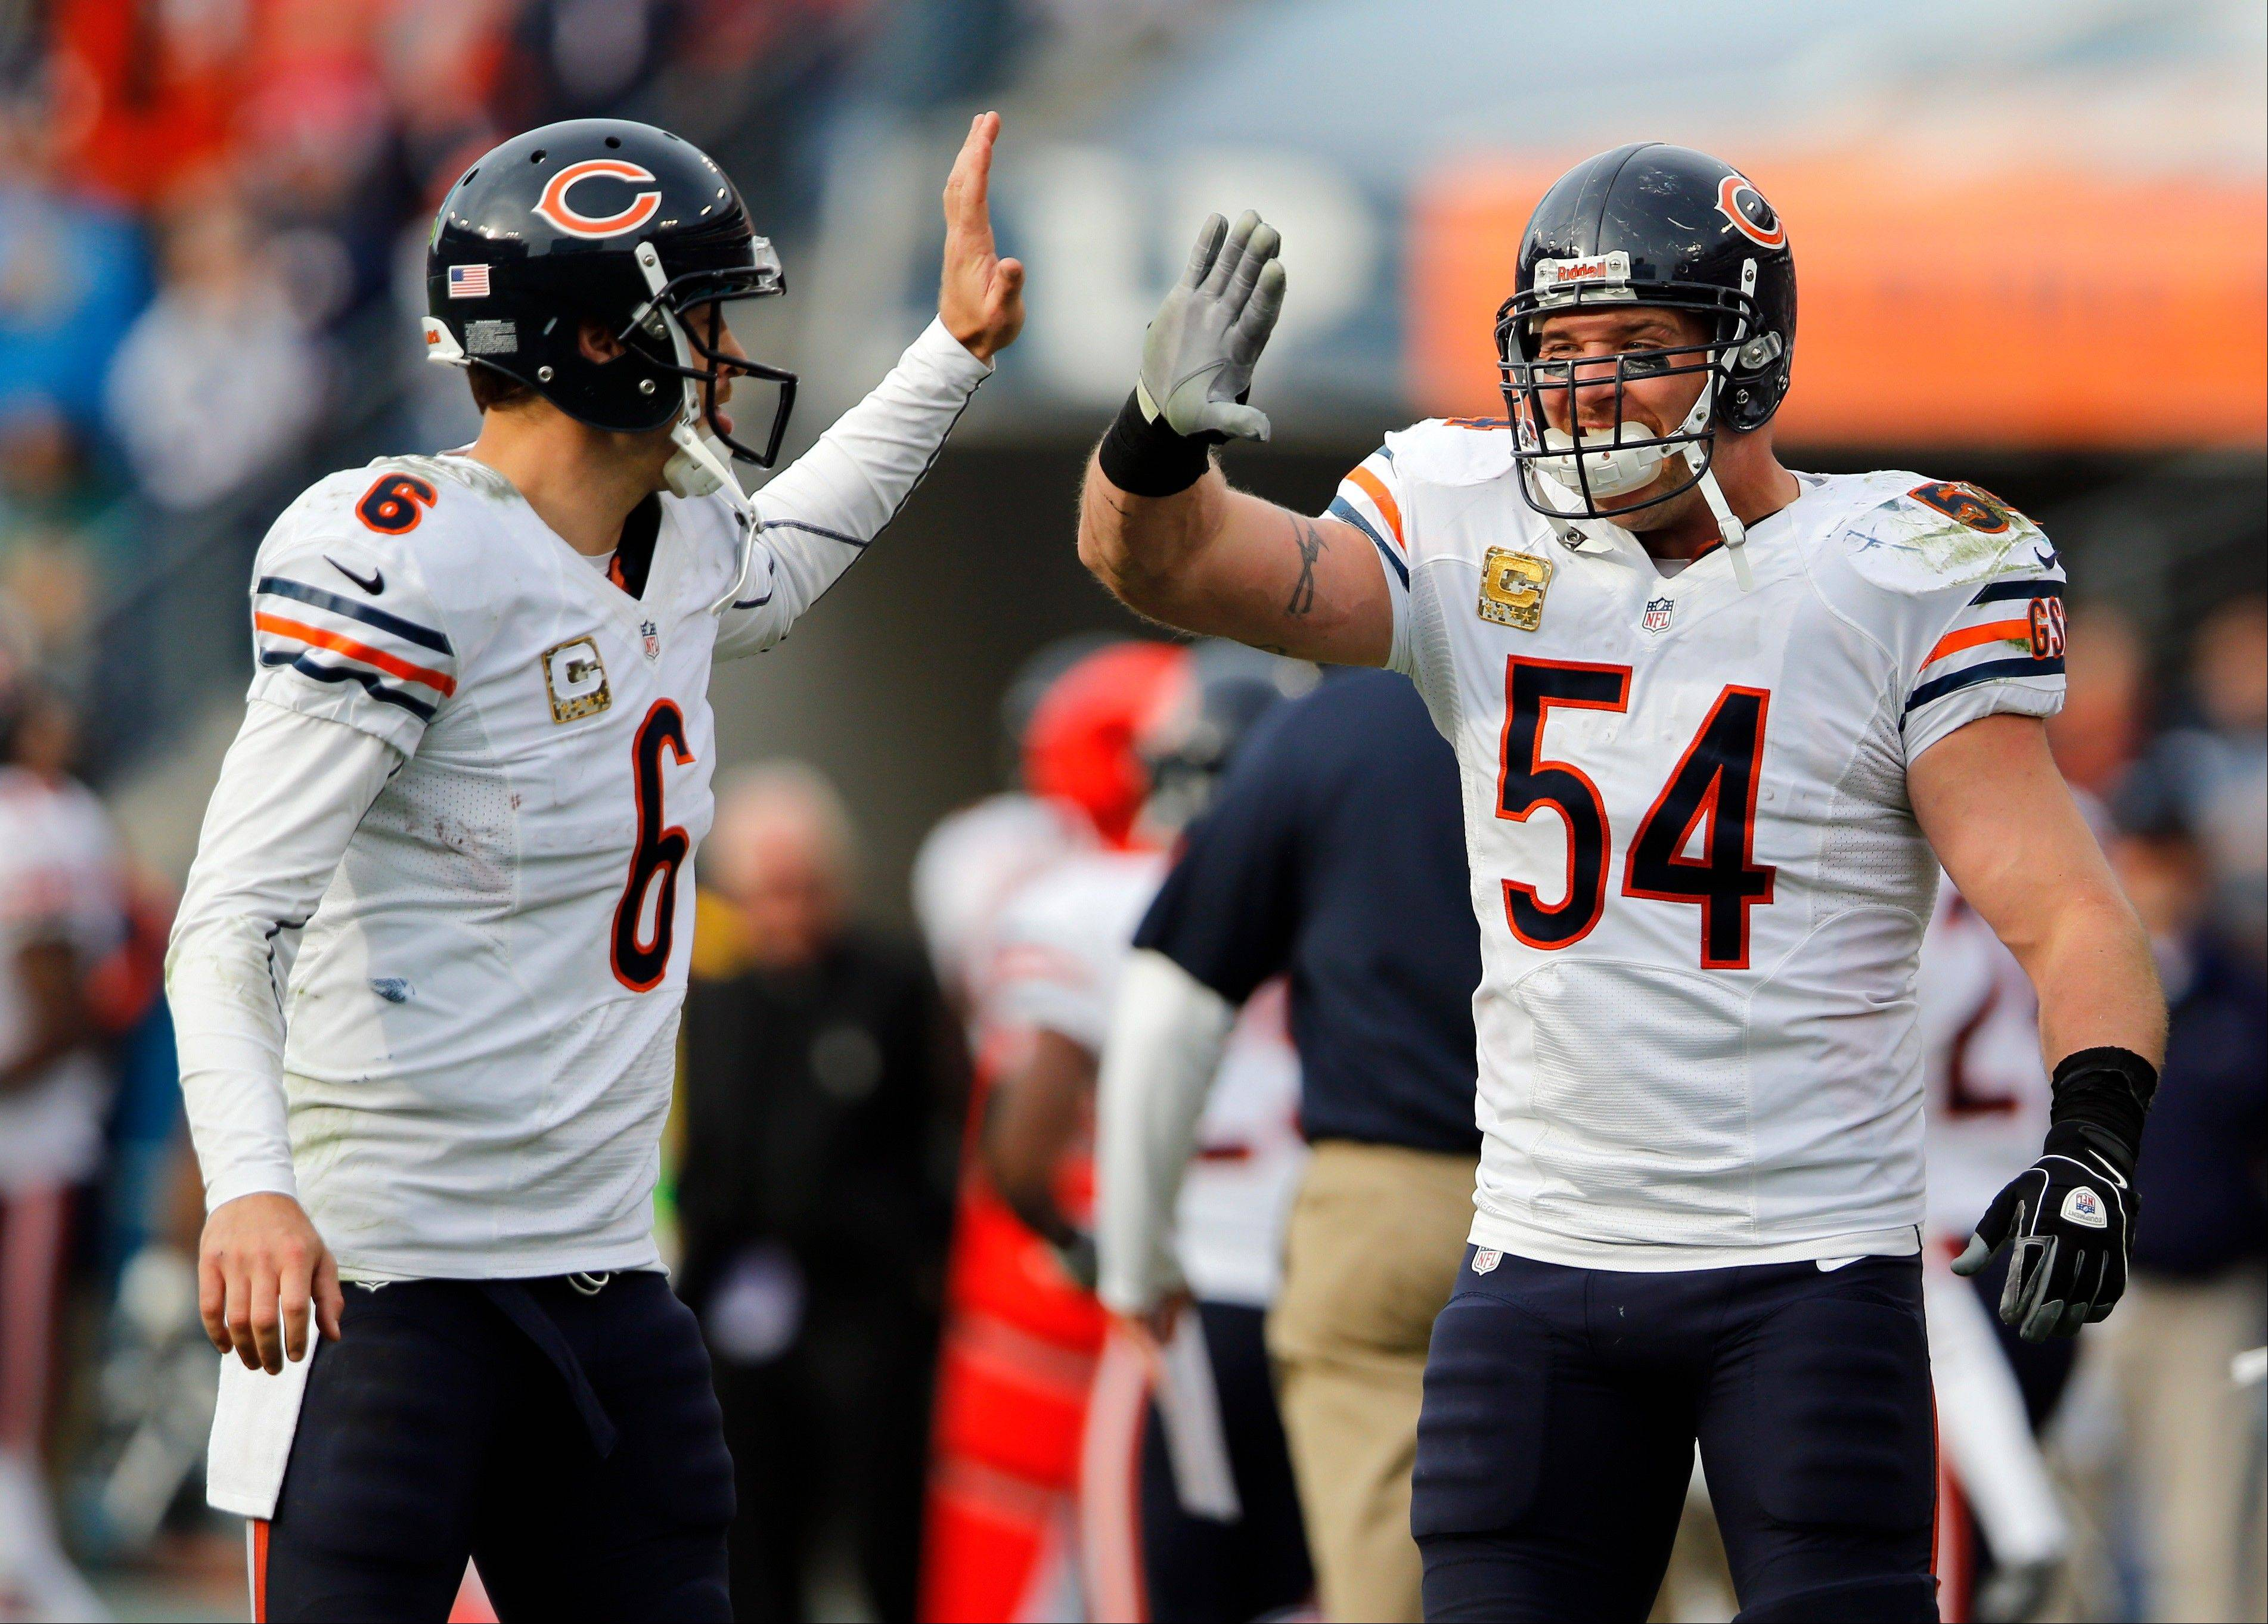 Bears quarterback Jay Cutler and middle linebacker Brian Urlacher celebrate during the team's 51-20 win over the Tennessee Titans. The Bears are doing so well, there's nothing to complain about, says Mike North.